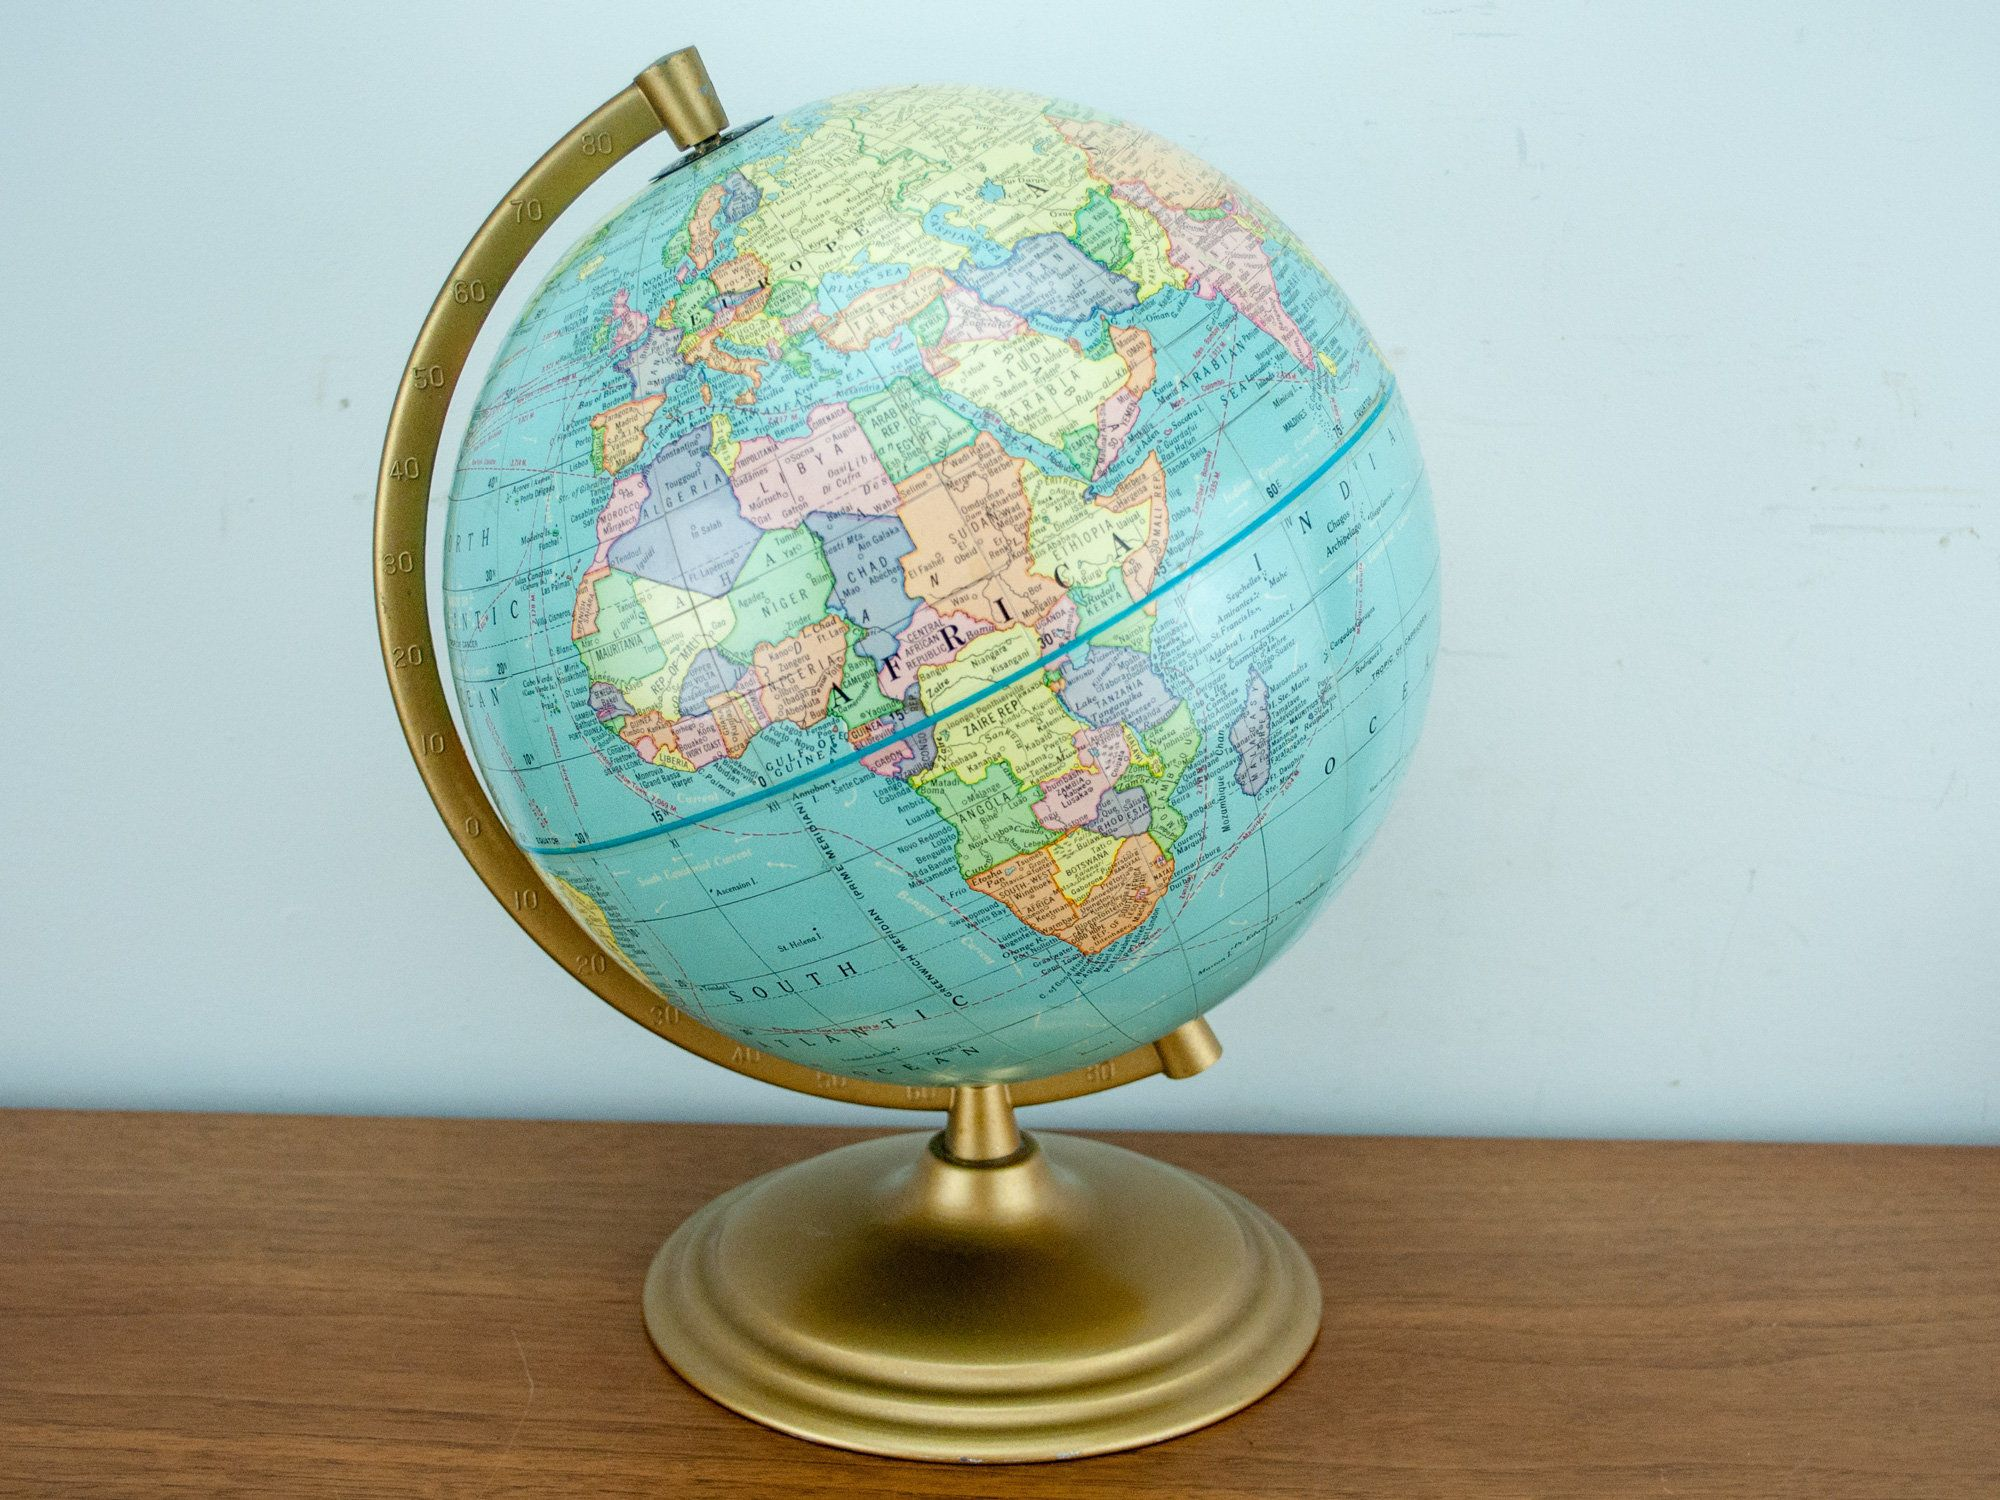 30cm Marco Polo Globe Illuminated Antique Style Globe with Magnifying Glass